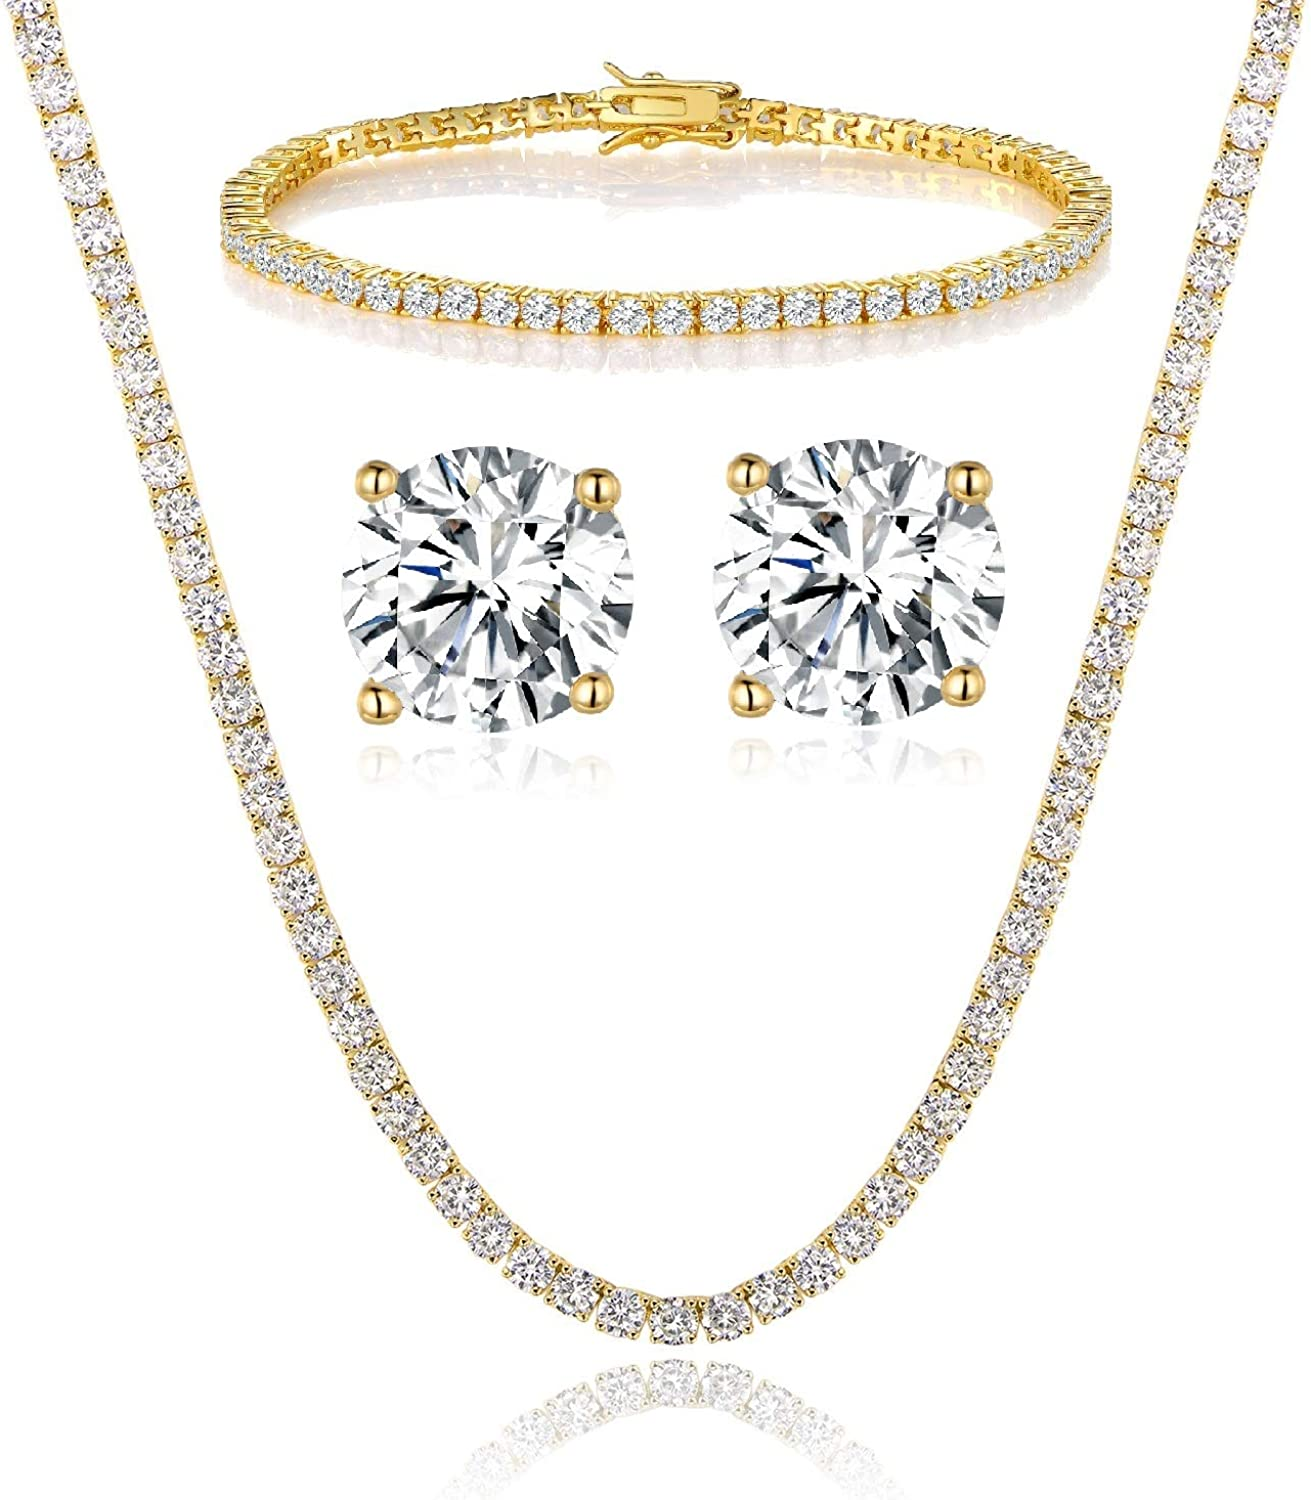 18K Yellow Gold Plated Tennis Necklace/Bracelet/Earrings Sets Pack of 3